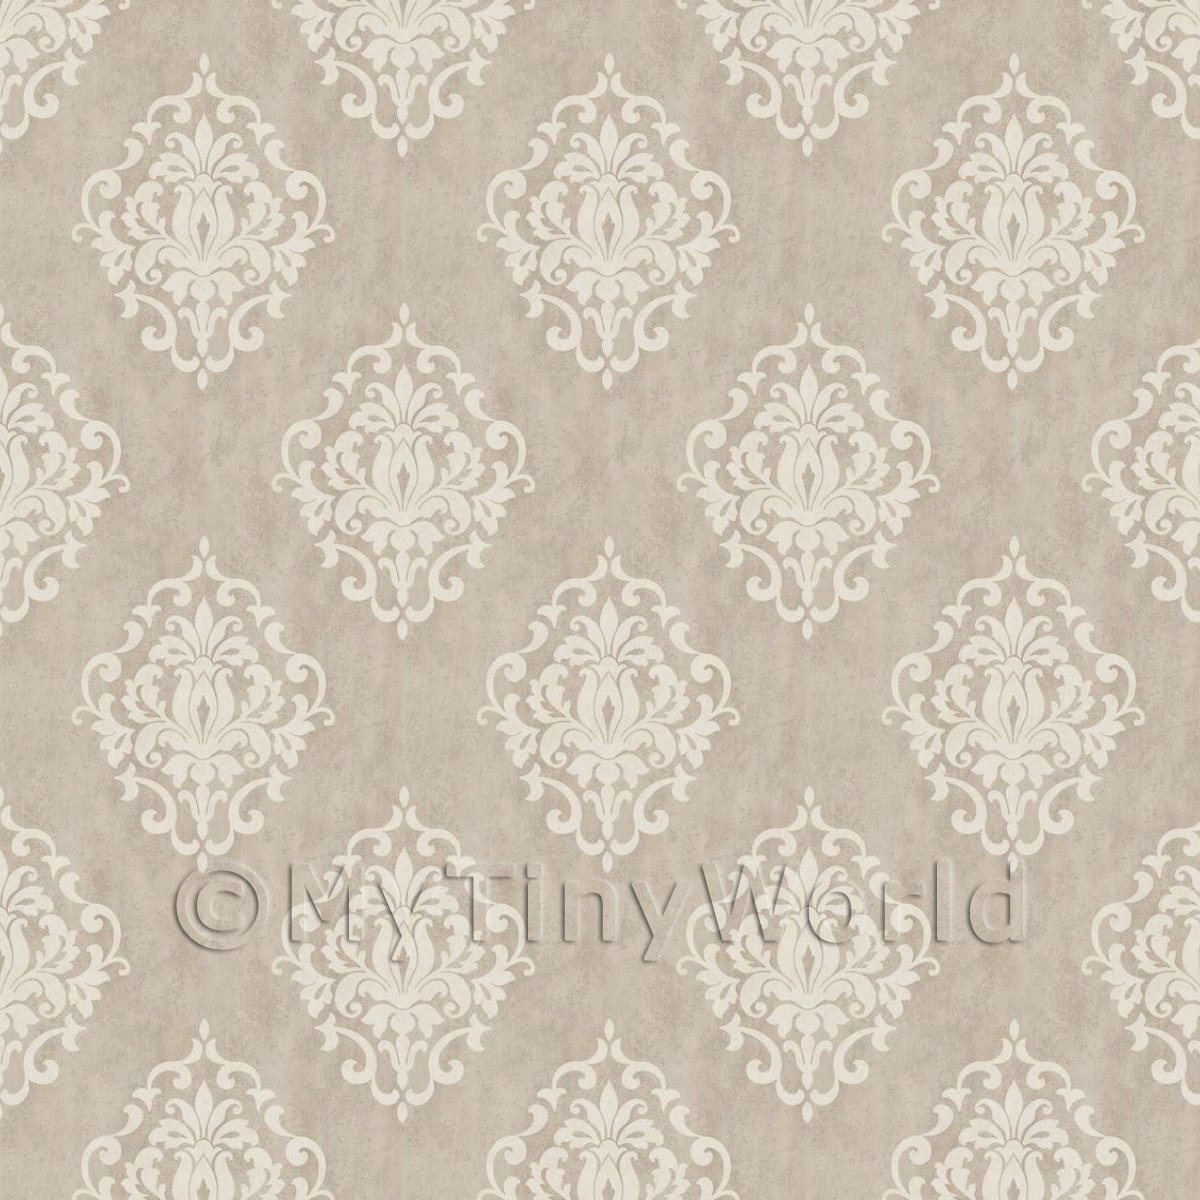 Pack of 5 Dolls House Pale Cocoa Floral Diamond Wallpaper Sheets